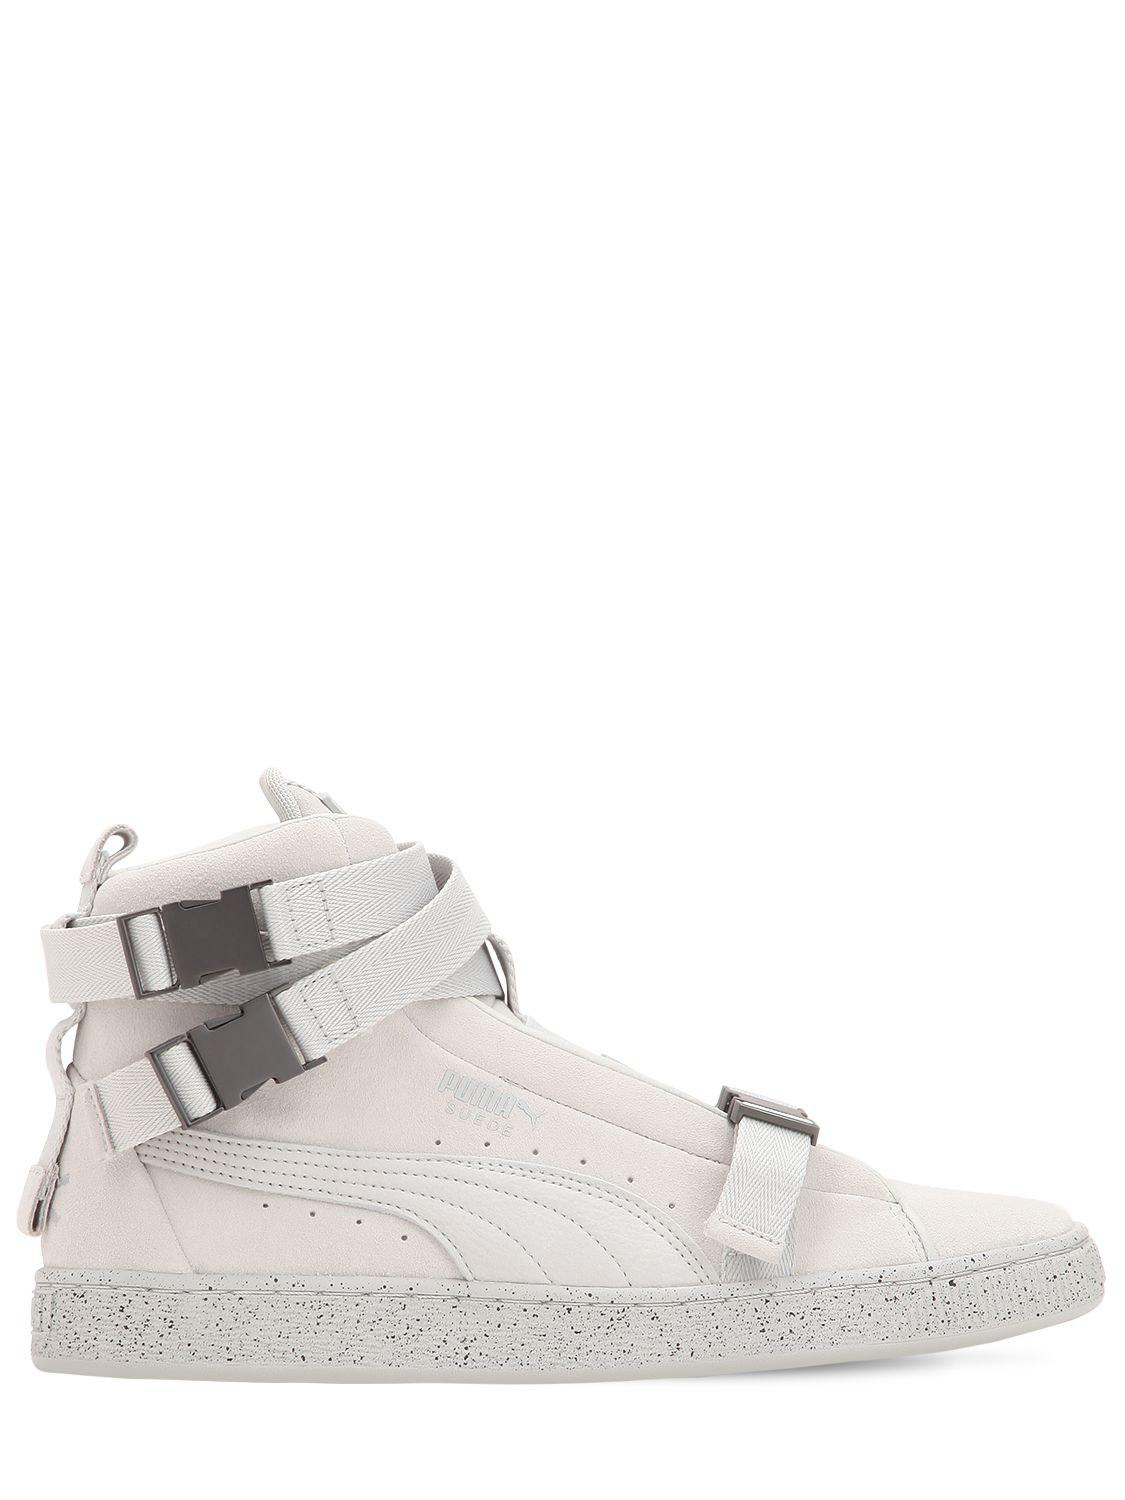 Puma Select The Weeknd Suede Classic Sneakers in Gray for Men - Lyst 5a8e28b9c